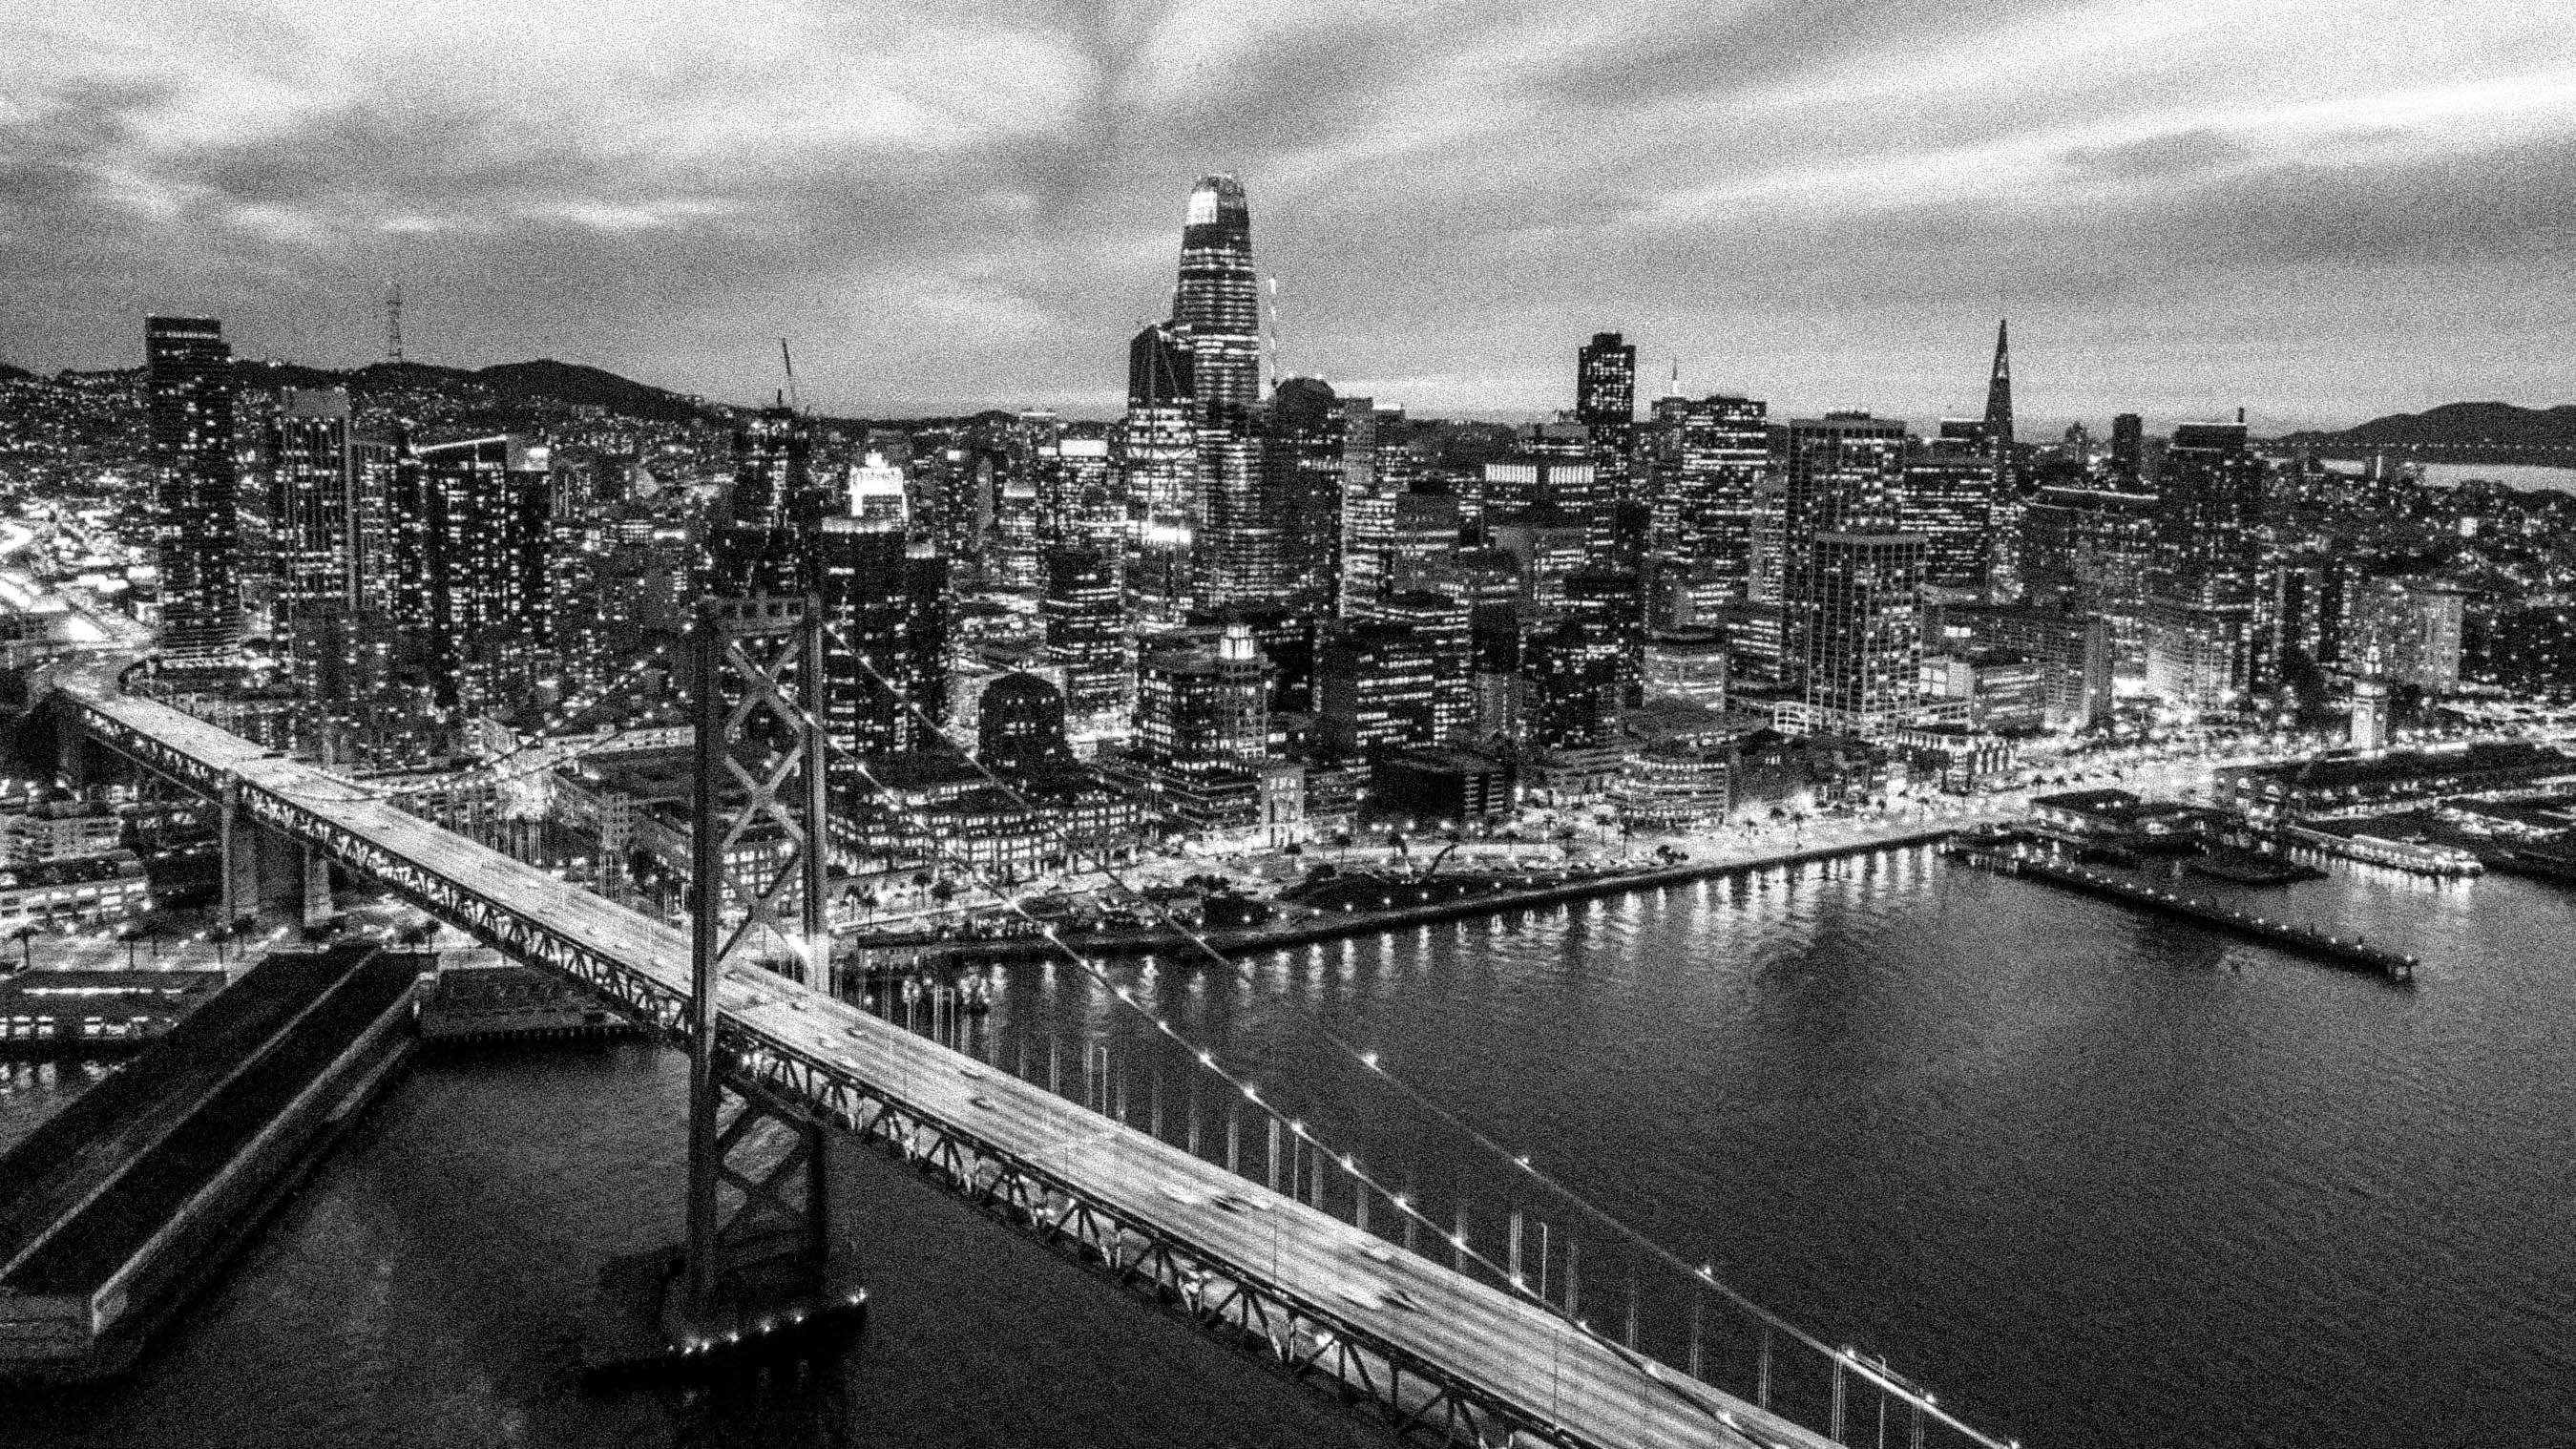 aerial-cityscape-view-of-san-francisco-and-the-2FPCNKG-584